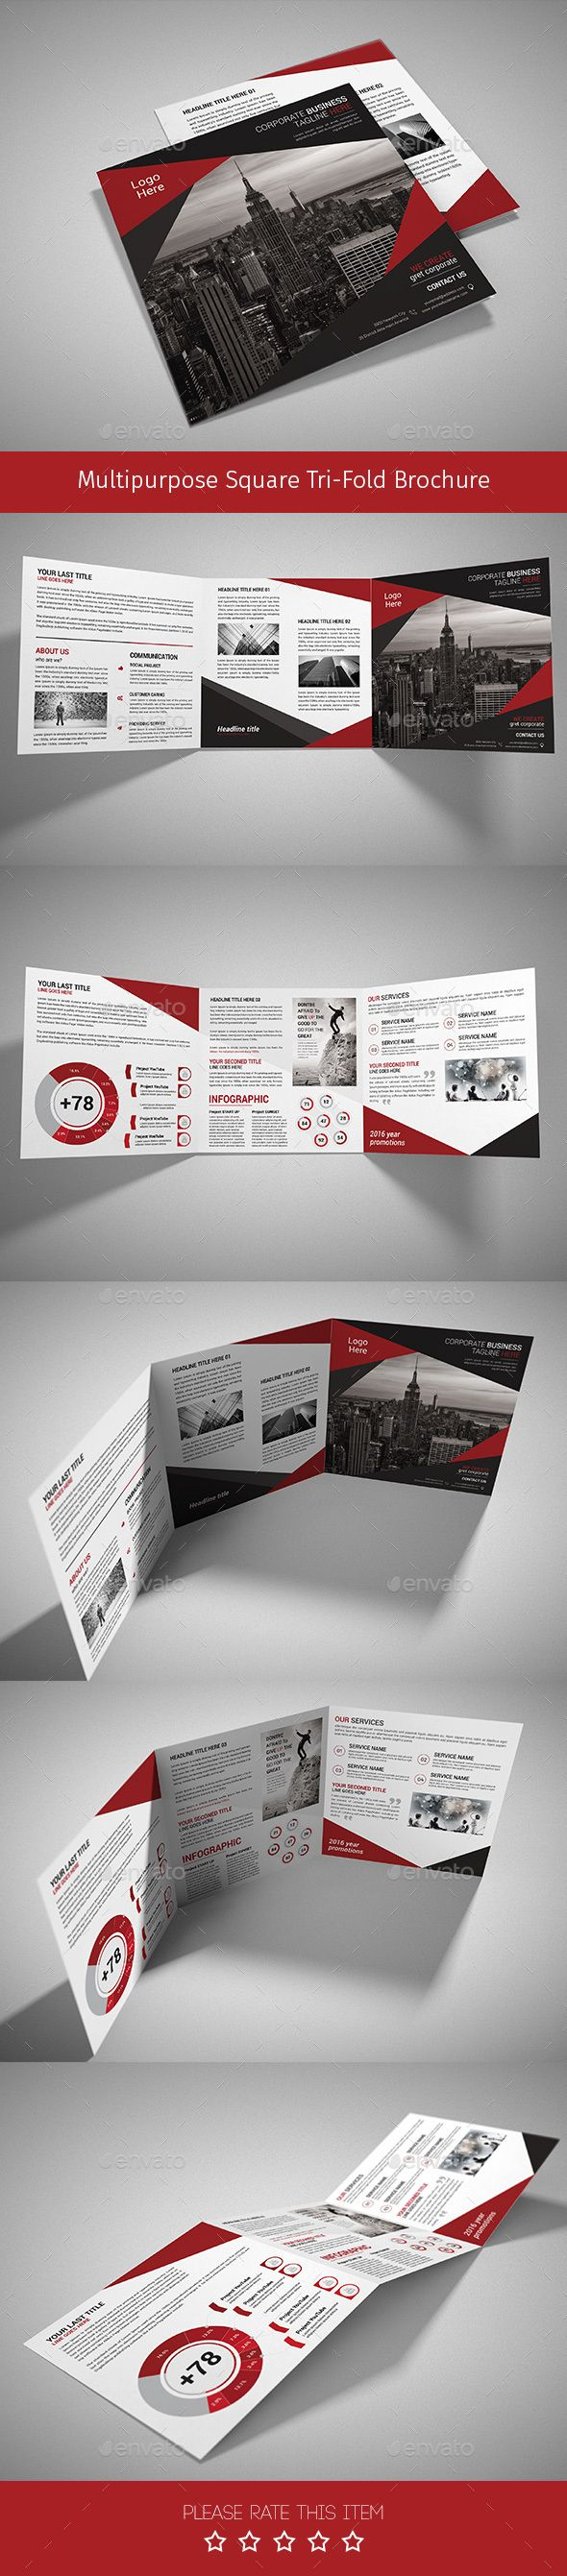 Corporate Tri-fold Square Brochure Template PSD. Download here: http://graphicriver.net/item/corporate-trifold-square-brochure-01/14558866?ref=ksioks